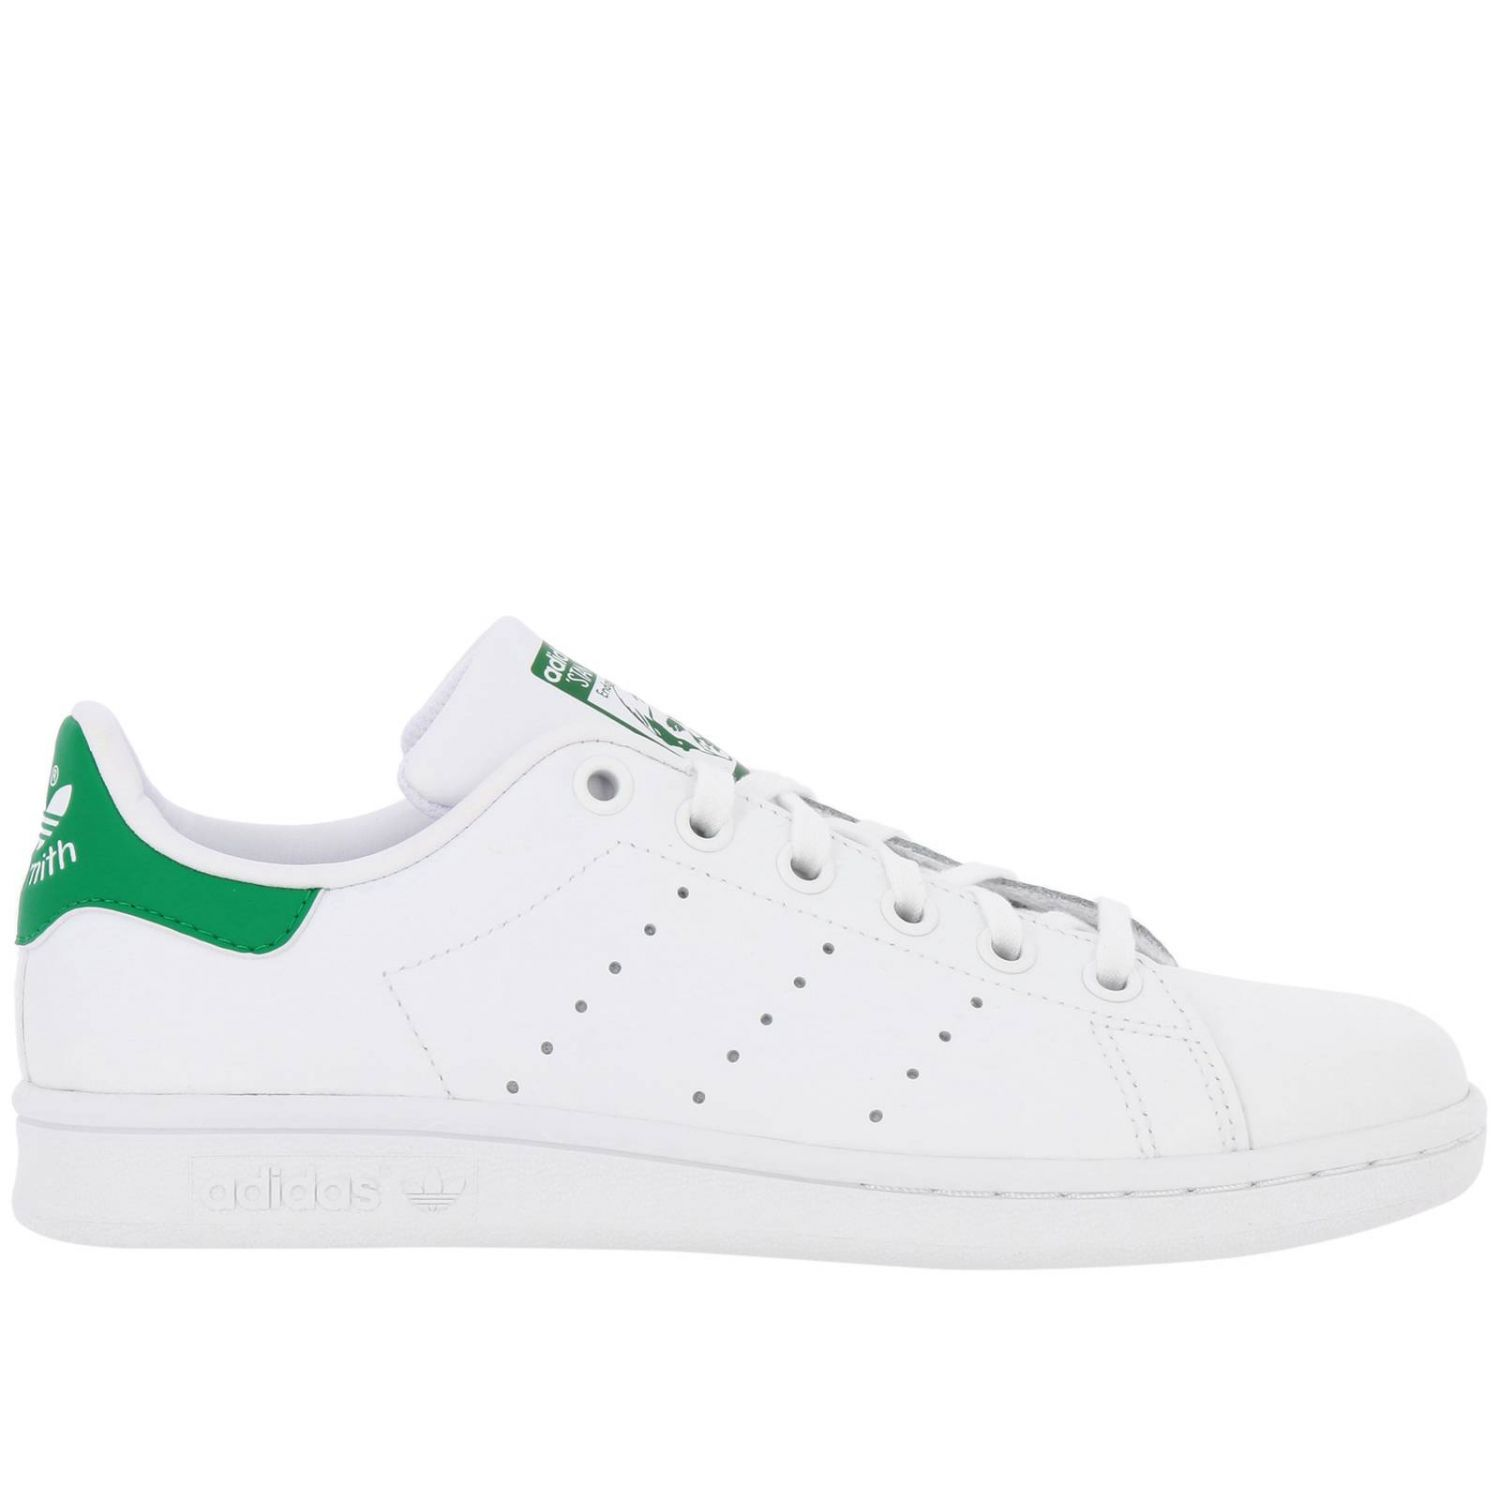 Shoes Adidas Originals: Stan Smith J Adidas Originals Sneakers in smooth leather white 1